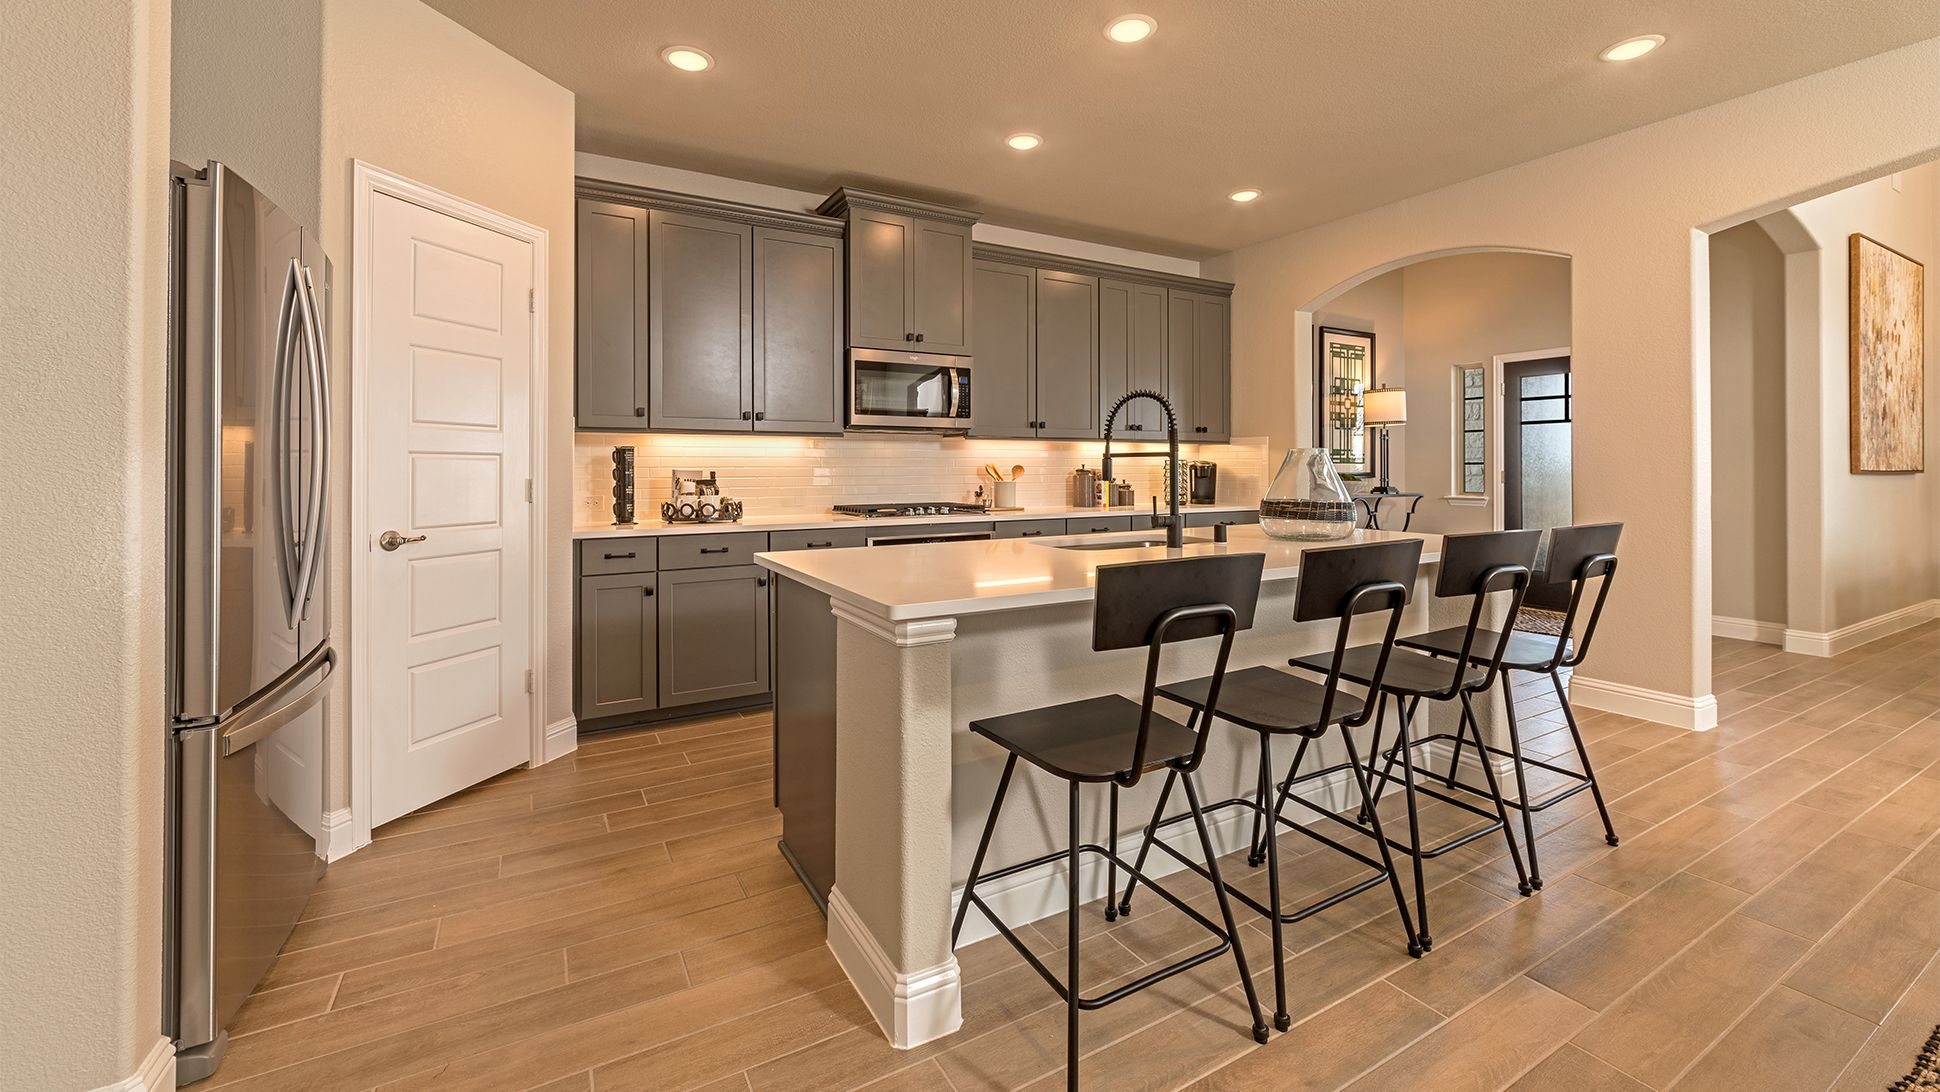 7416 Crosstimbers Drive 05 Jpg In 2020 Beautiful Kitchens Wood Floors Plus Energy Efficient Homes